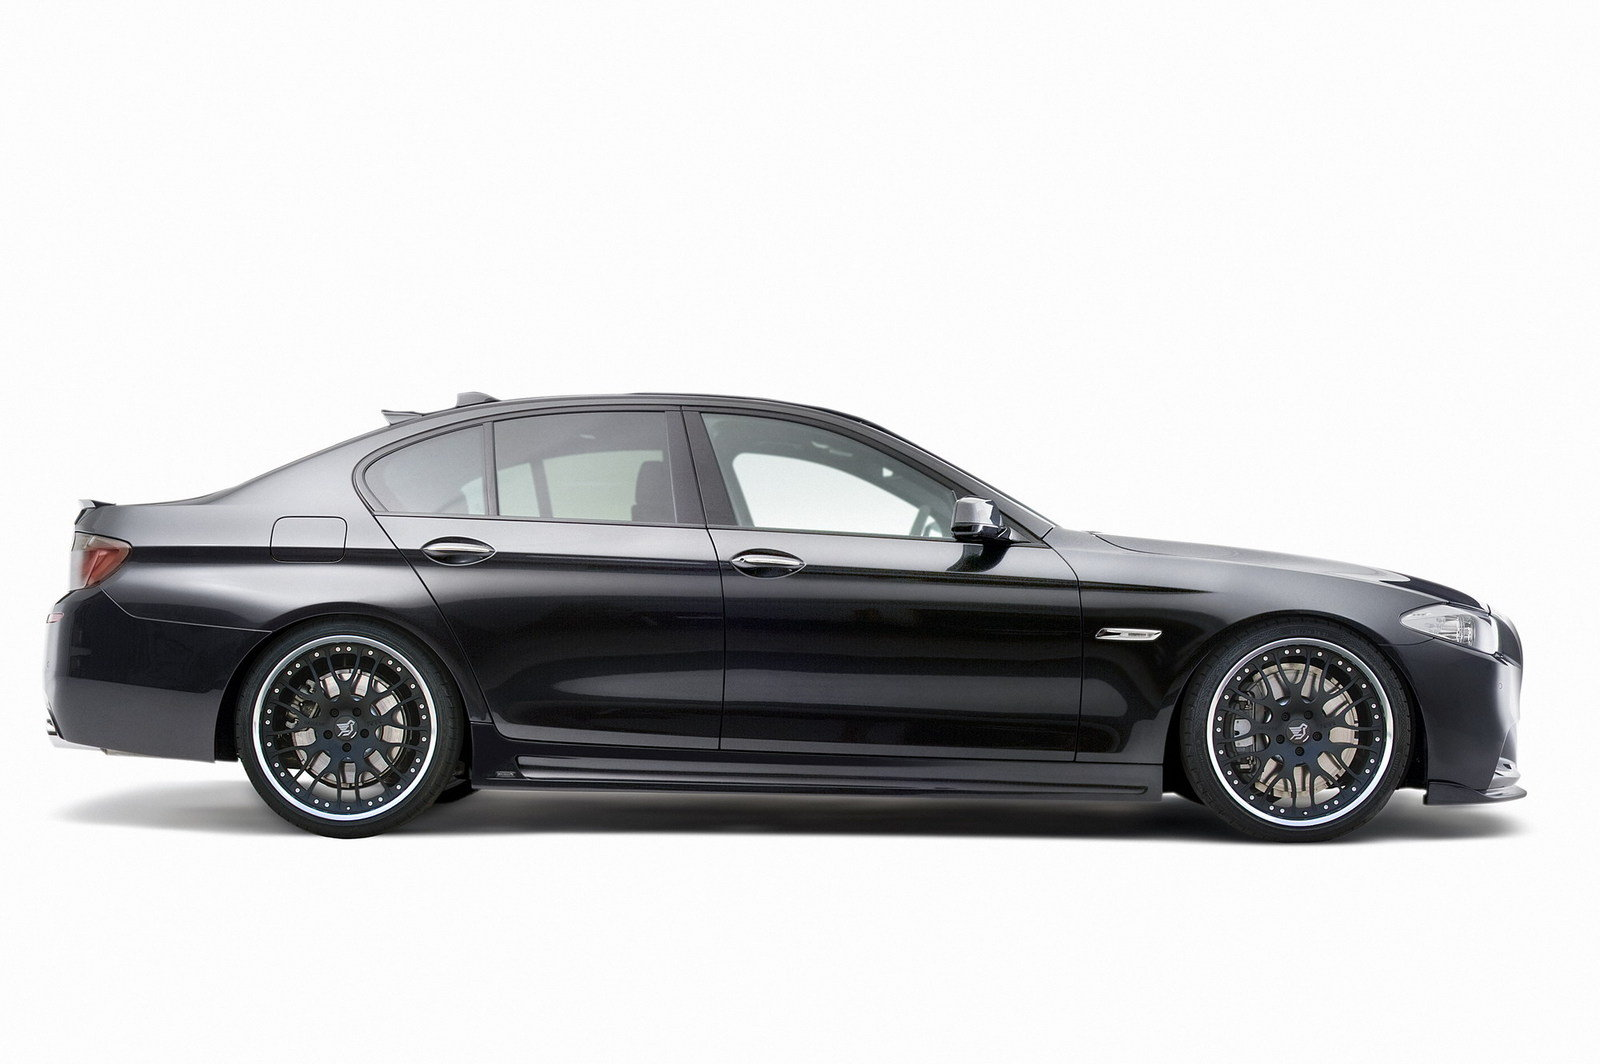 http://pictures.topspeed.com/IMG/crop/201102/bmw-5-series-with-m--1_1600x0w.jpg